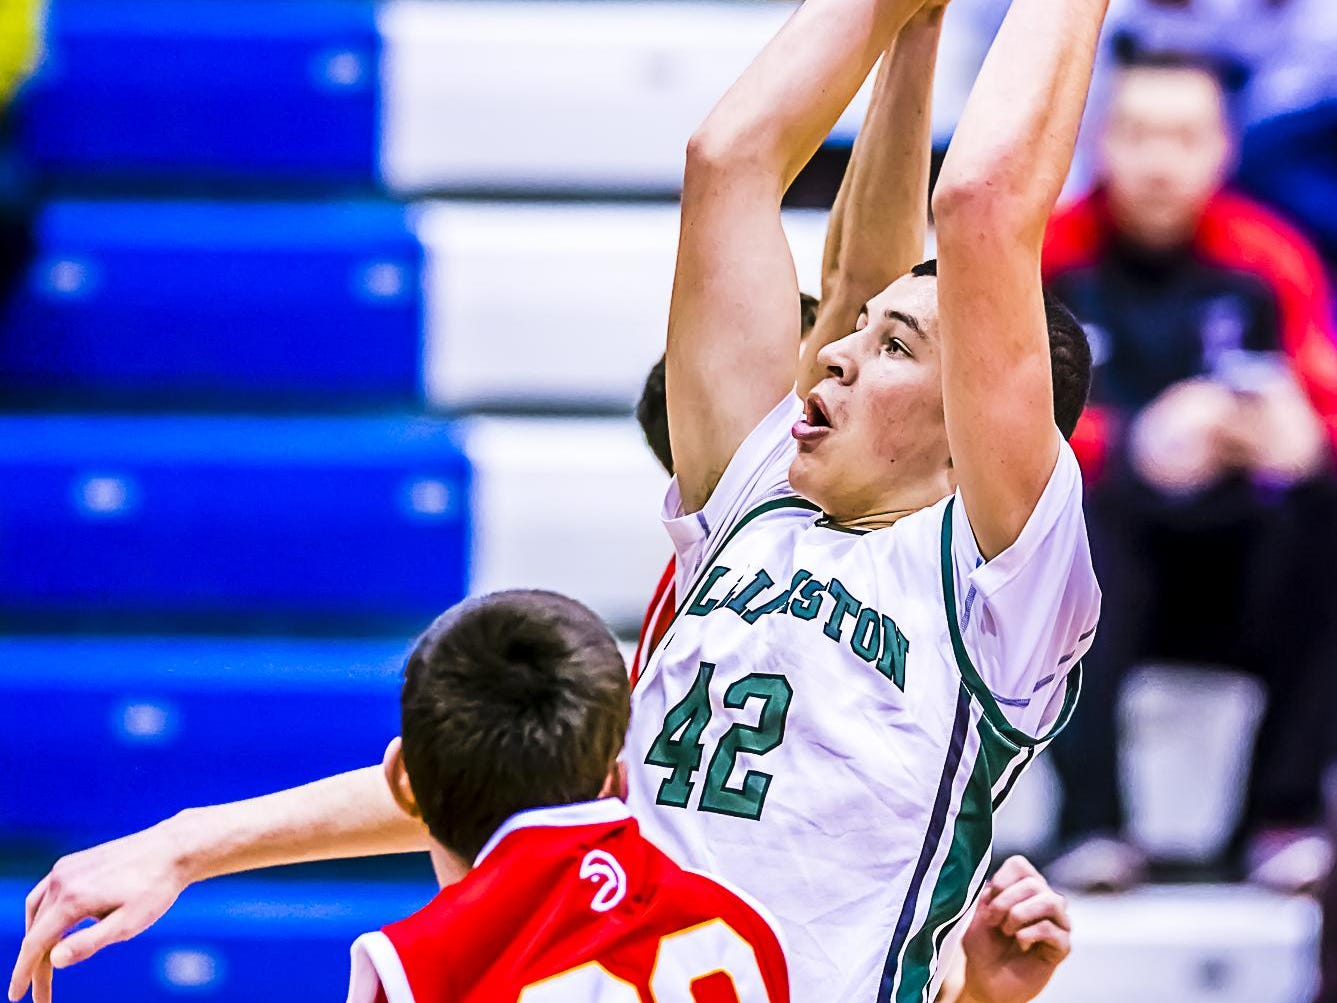 Sean Cobb ,42, of Williamston grabs an offensive rebound over Justin Koch ,33, of Troy Athens during their Holiday Hoops Invitational game Tuesday December 29, 2015 at Lansing Community College. KEVIN W. FOWLER PHOTO